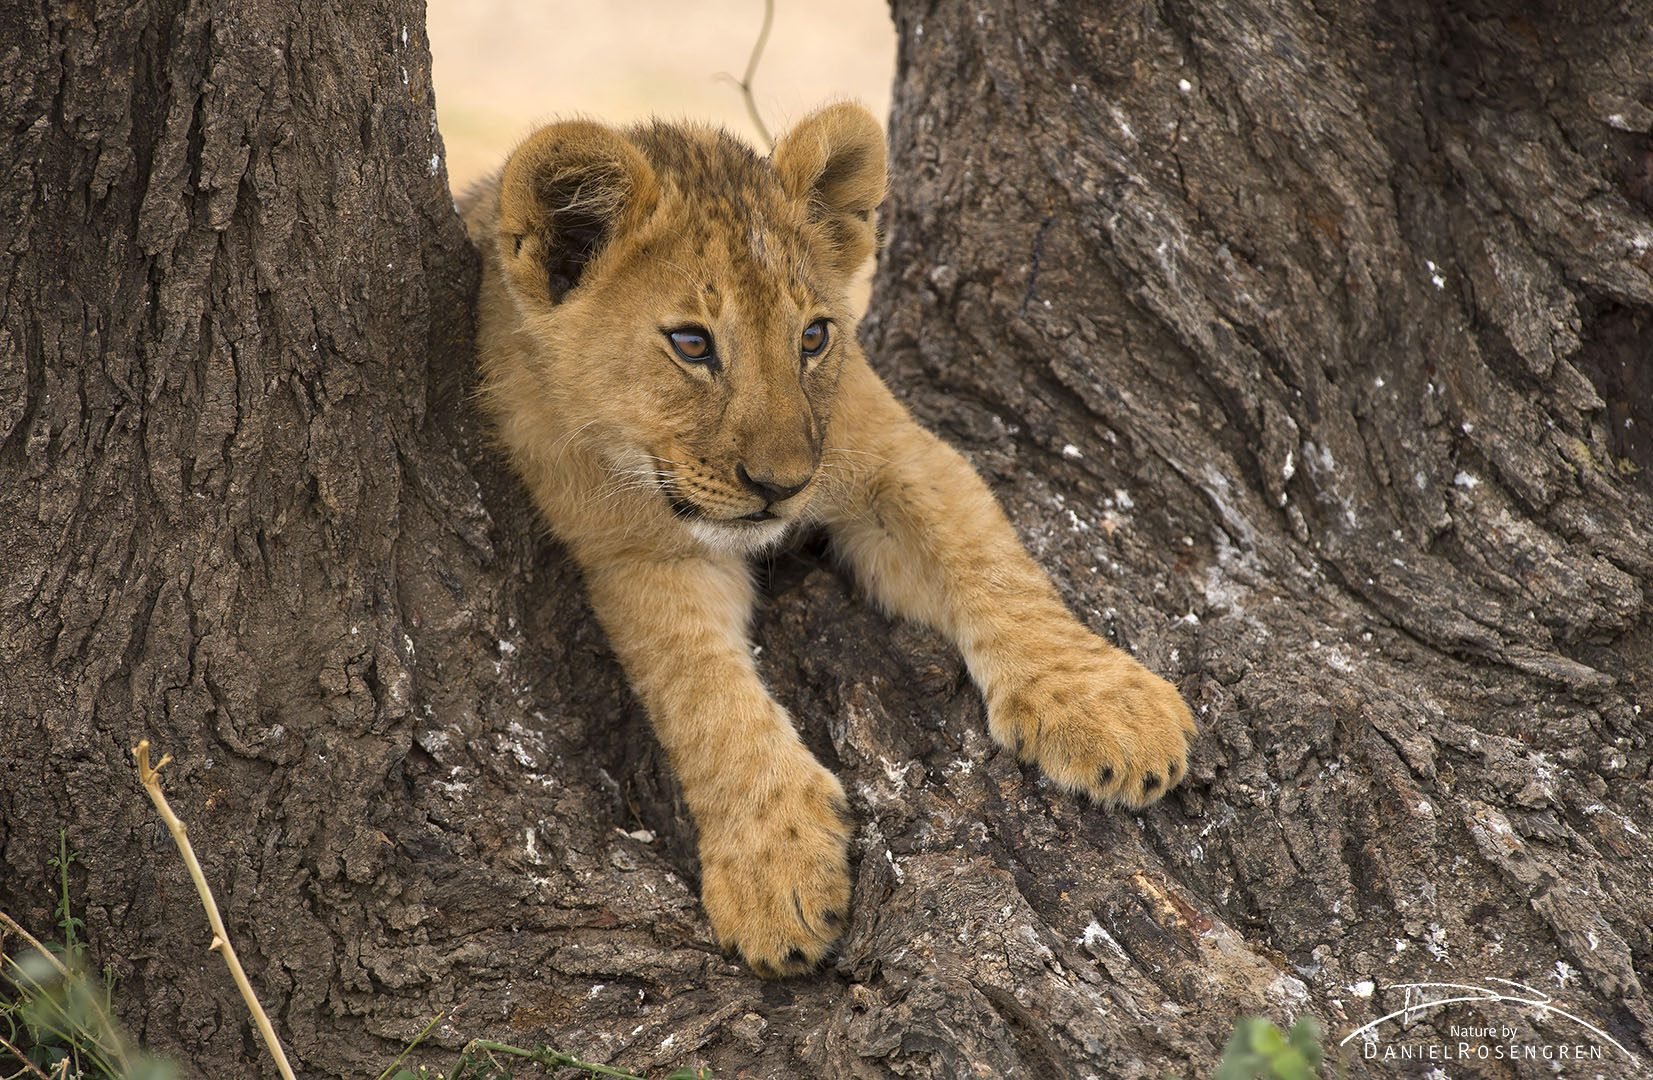 A lion cub resting on the base of a tree in Serengeti.